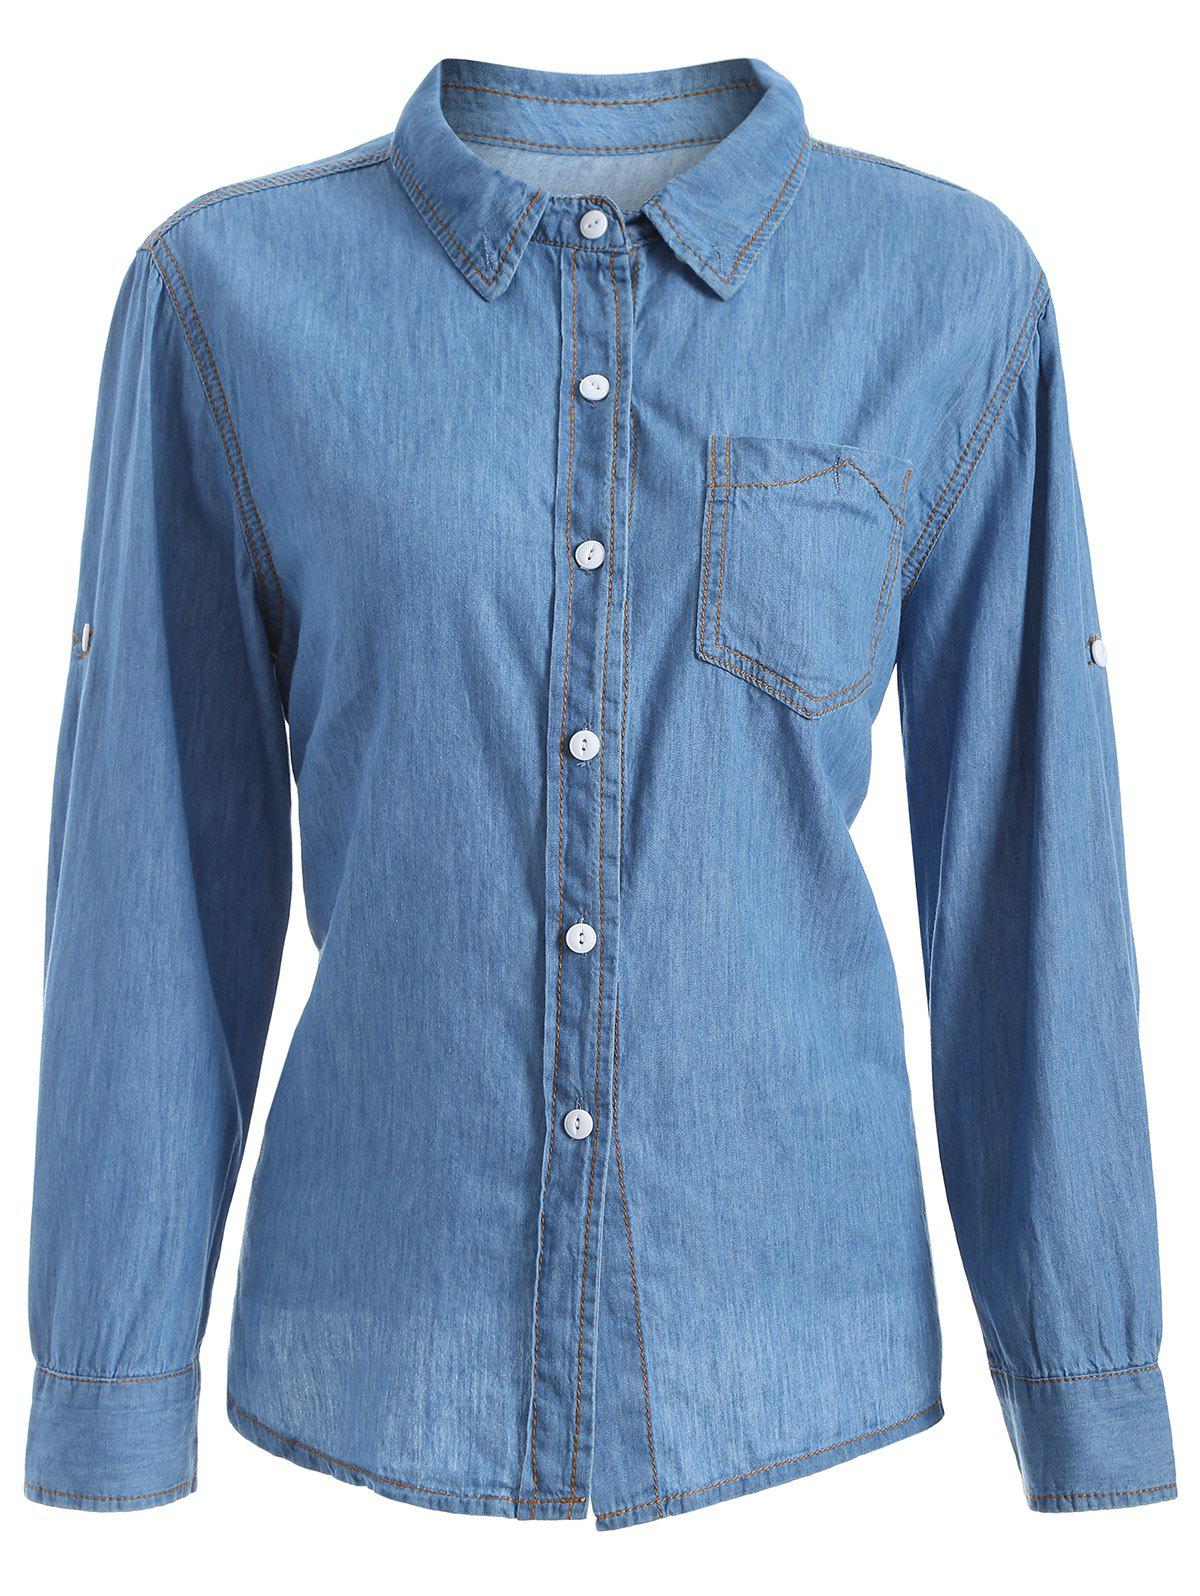 plus size chambray shirt with pocket, denim blue, xl in plus size